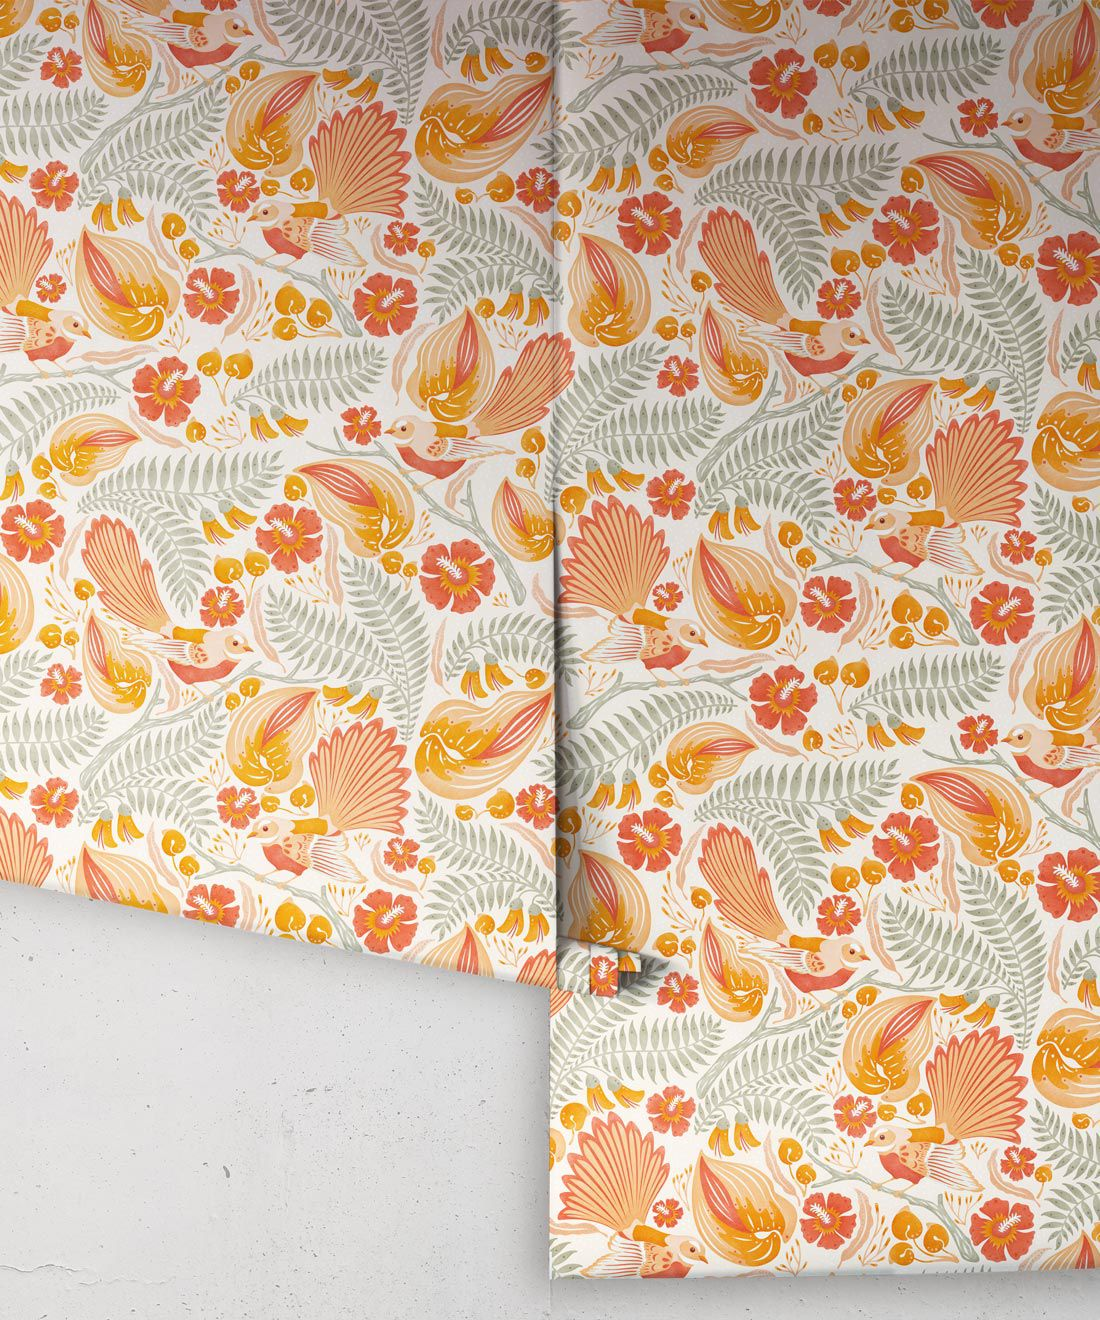 Faintails Wallpaper • New Zealand • Bird Wallpaper • Kowhai Tree • Kowhai Flowers • Orange Wallpaper • Light Colorway • Wallpaper Rolls